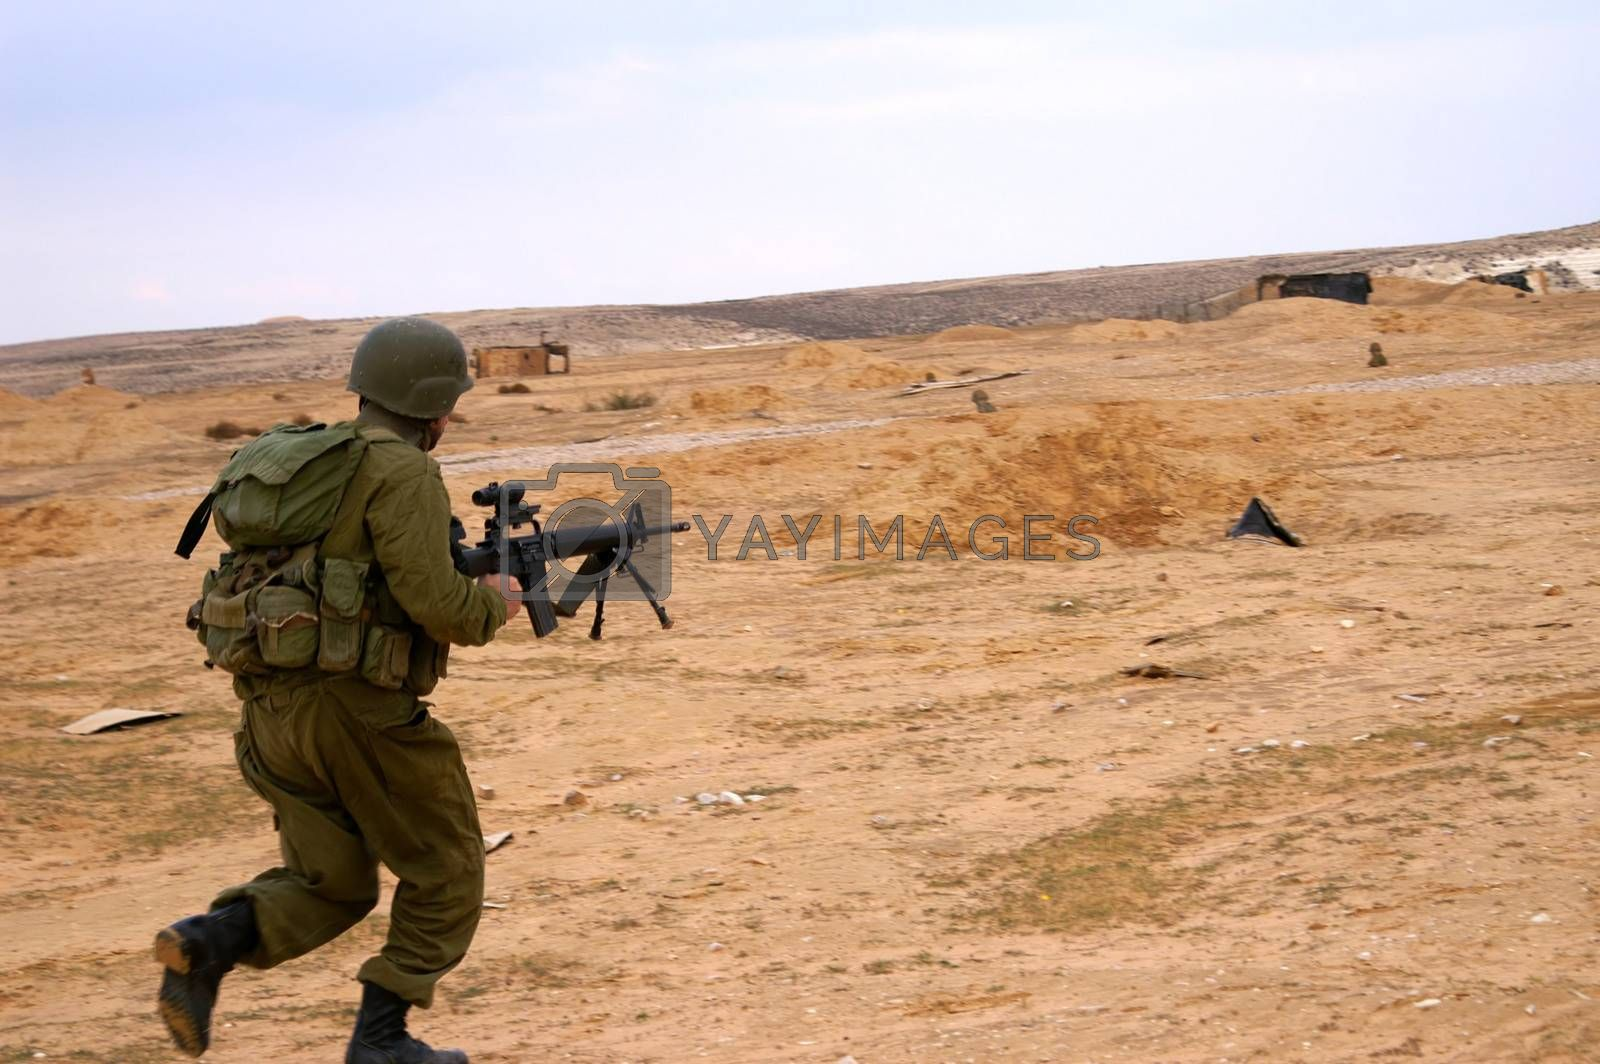 israeli soldiers attack - battle field - military exercise